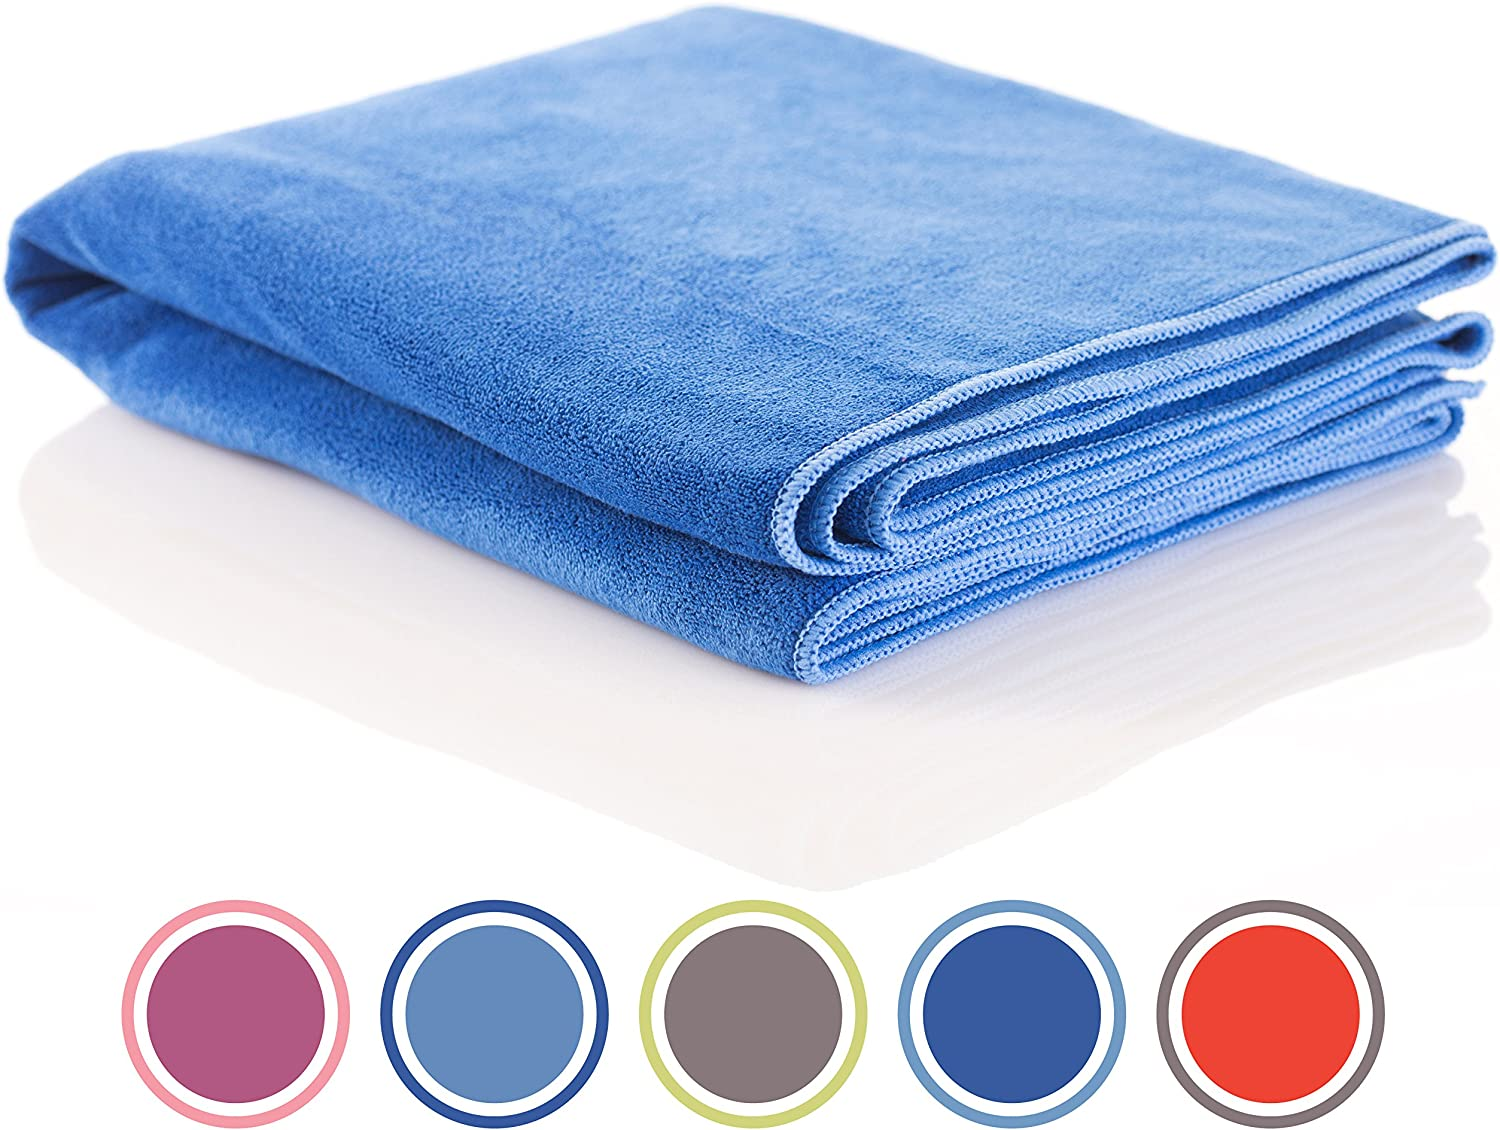 Microfiber Sports and Non Slip Hot Yoga Mat Towel - Quick Dry, Soft and Absorbent Gym Towels - Camping, Fitness, Workout, Pilates, Travel or Beach